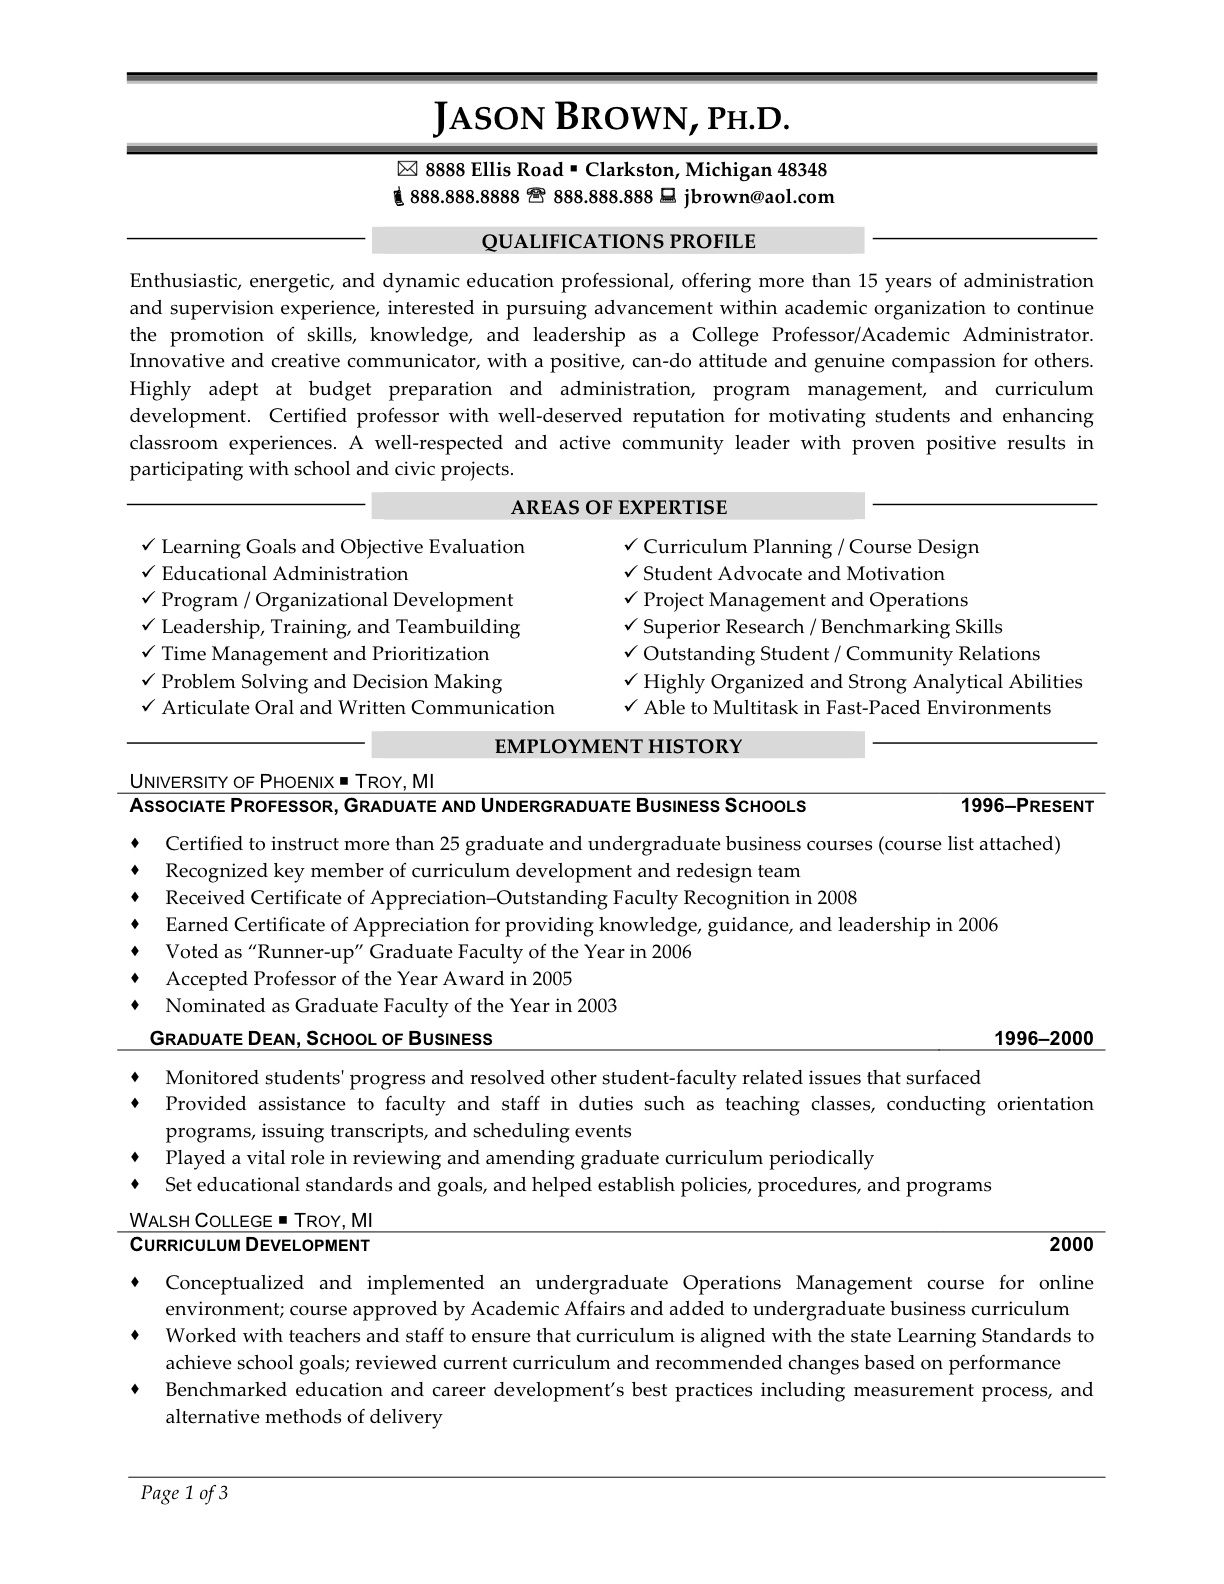 Sample resume for professor job careerperfect academic skill cover sample resume for professor job careerperfect academic skill cover letter madrichimfo Image collections